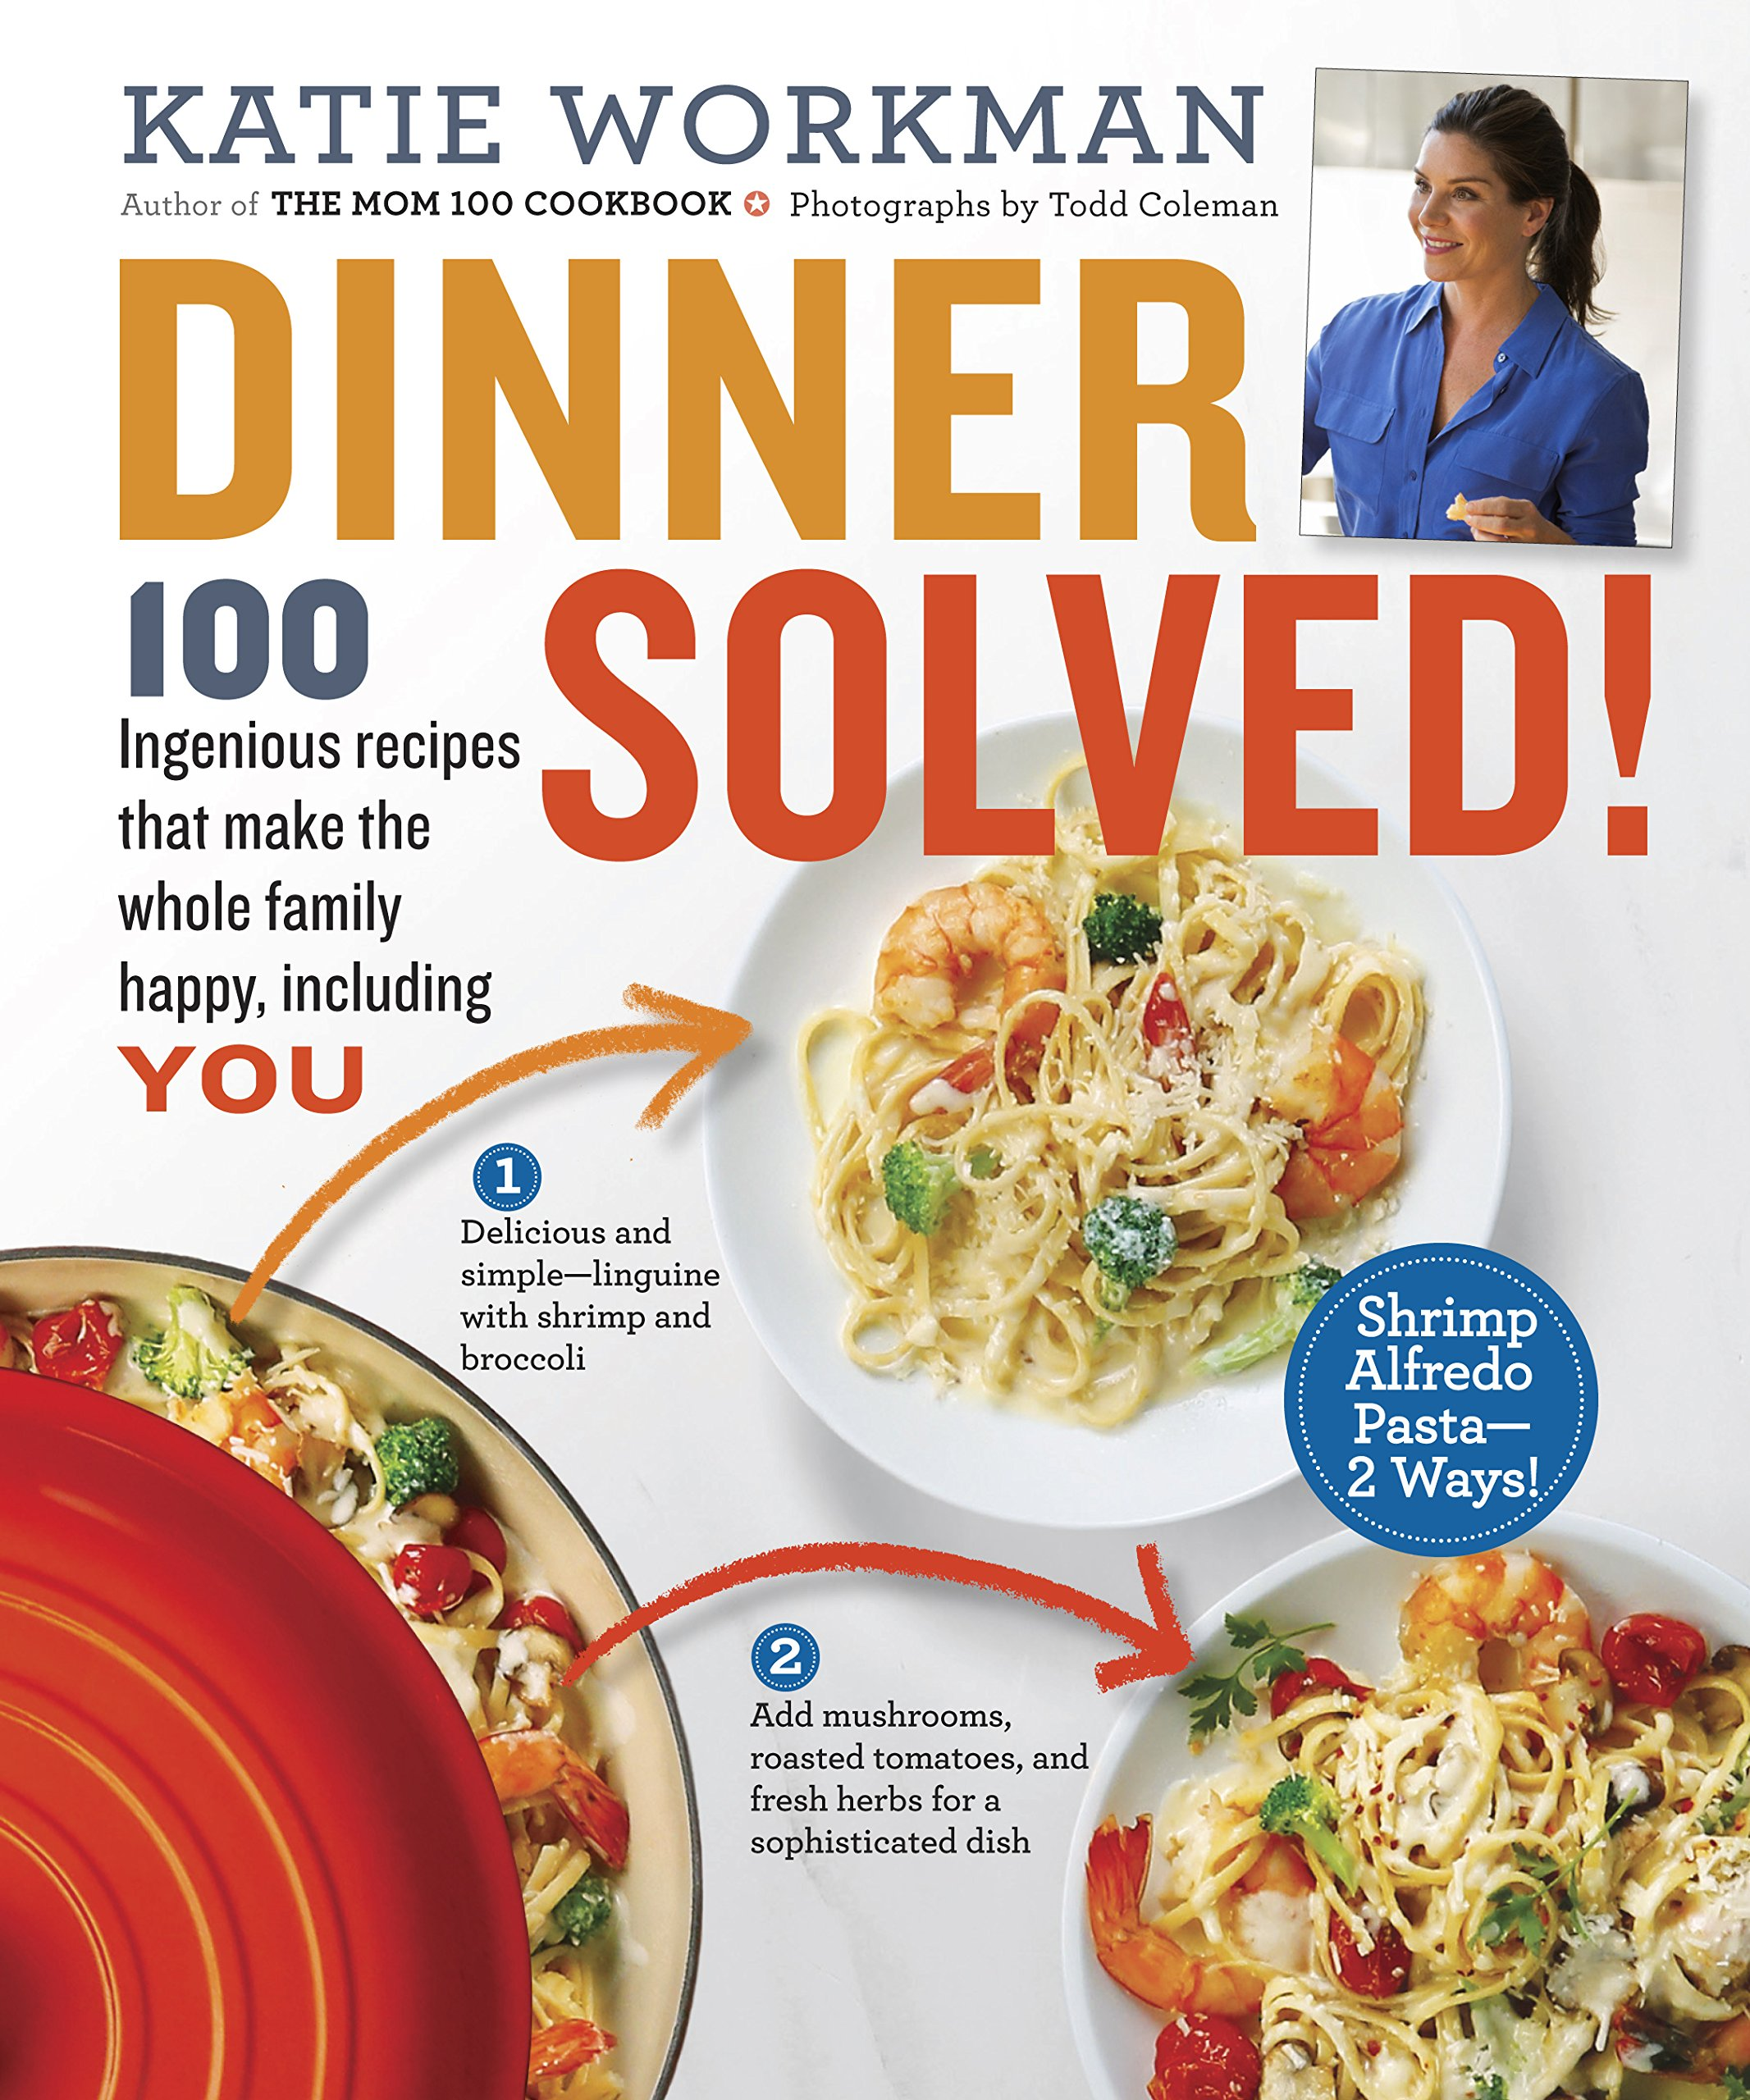 Dinner solved 100 ingenious recipes that make the whole family dinner solved 100 ingenious recipes that make the whole family happy including you katie workman 9780761181873 amazon books forumfinder Images